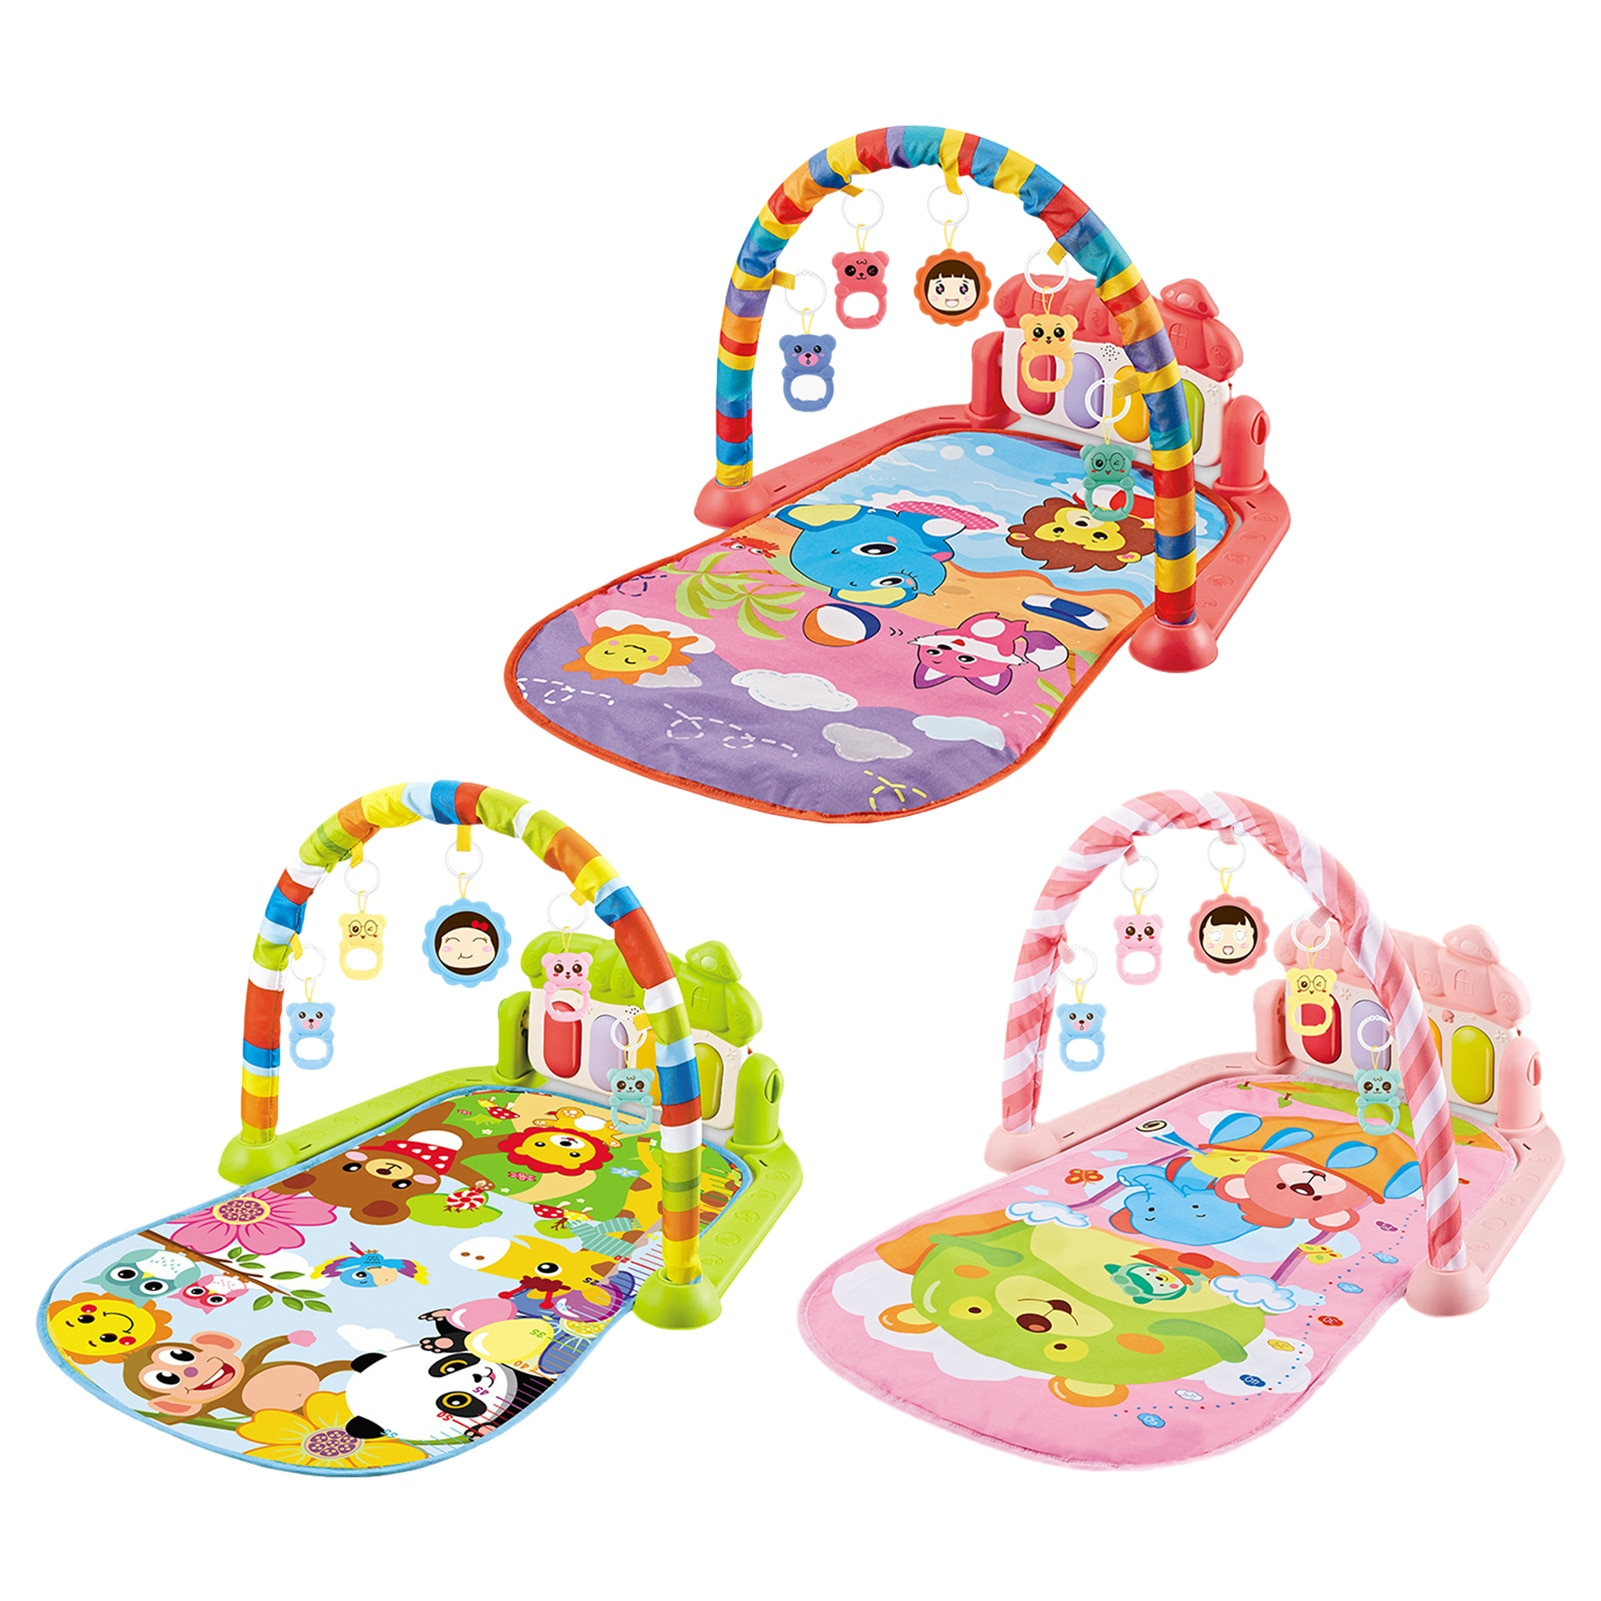 baby activity play mat baby gym educational fitness frame multi bracket baby toys game mats play lay sit toy with piano mirror New Musical Baby Play Mat Play Piano Activity Gym With Hanging Toys Infant Playmat Early Education Gym Crawling Game Pad Toy